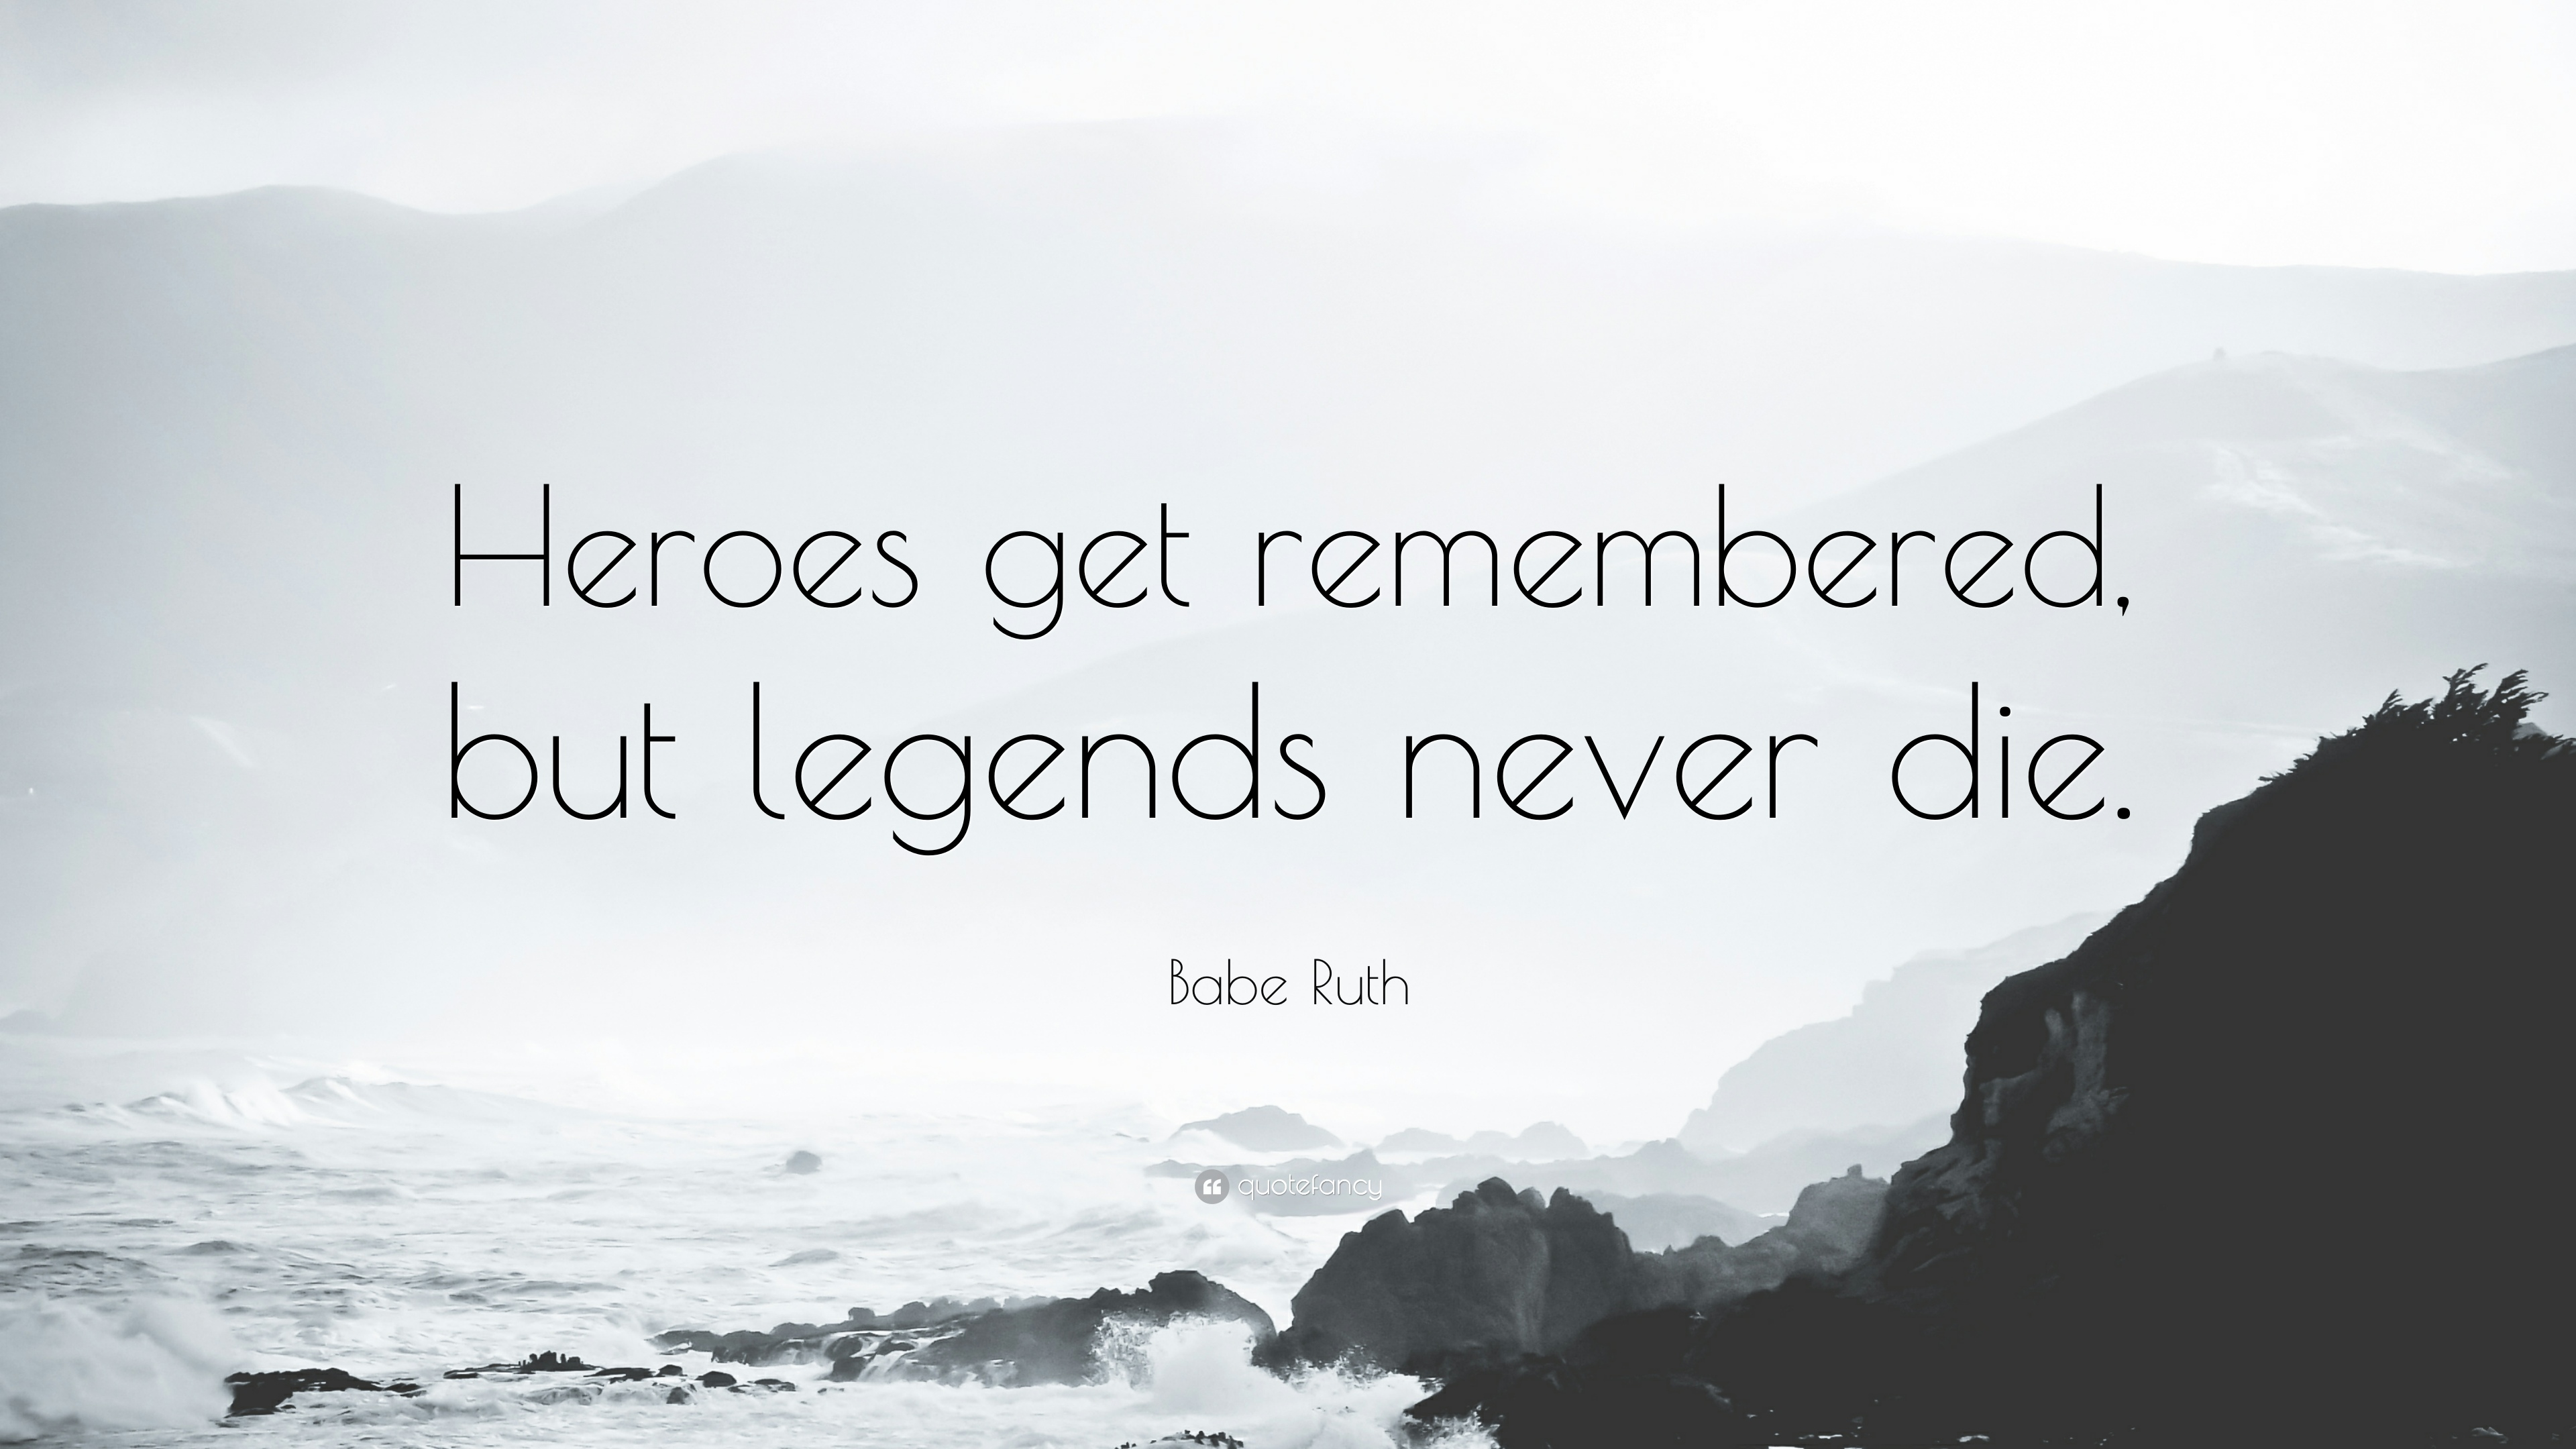 John Muir Quotes Wallpaper Babe Ruth Quote Heroes Get Remembered But Legends Never